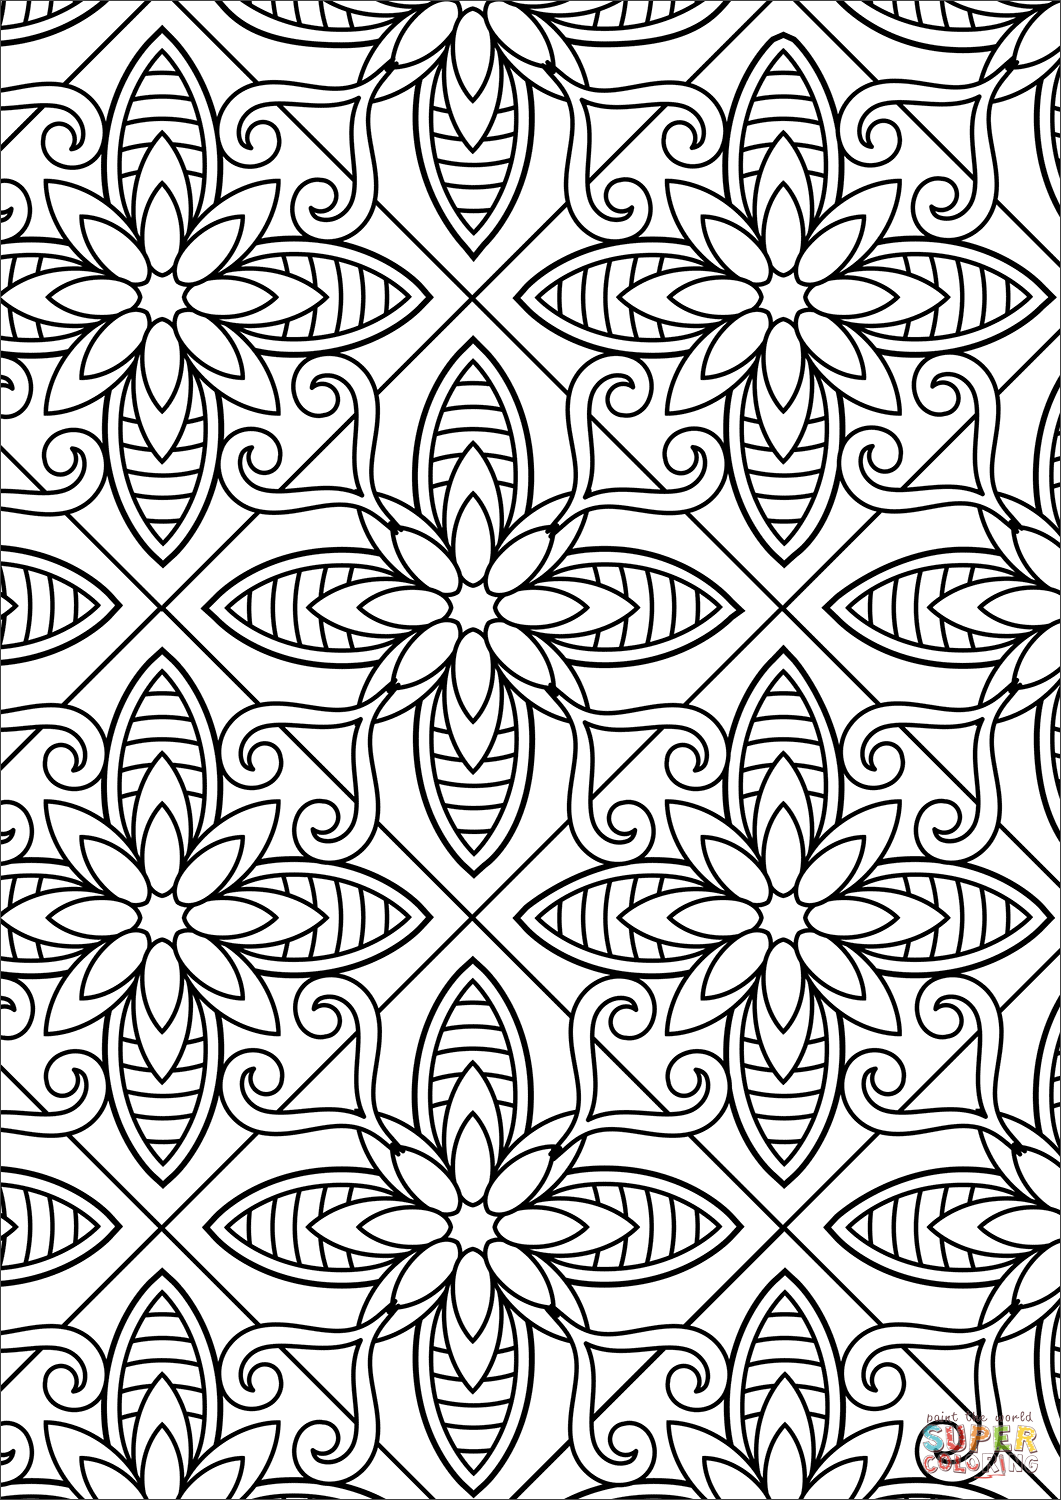 coloring patterns pages cool designs to color in geometric design pattern patterns pages coloring